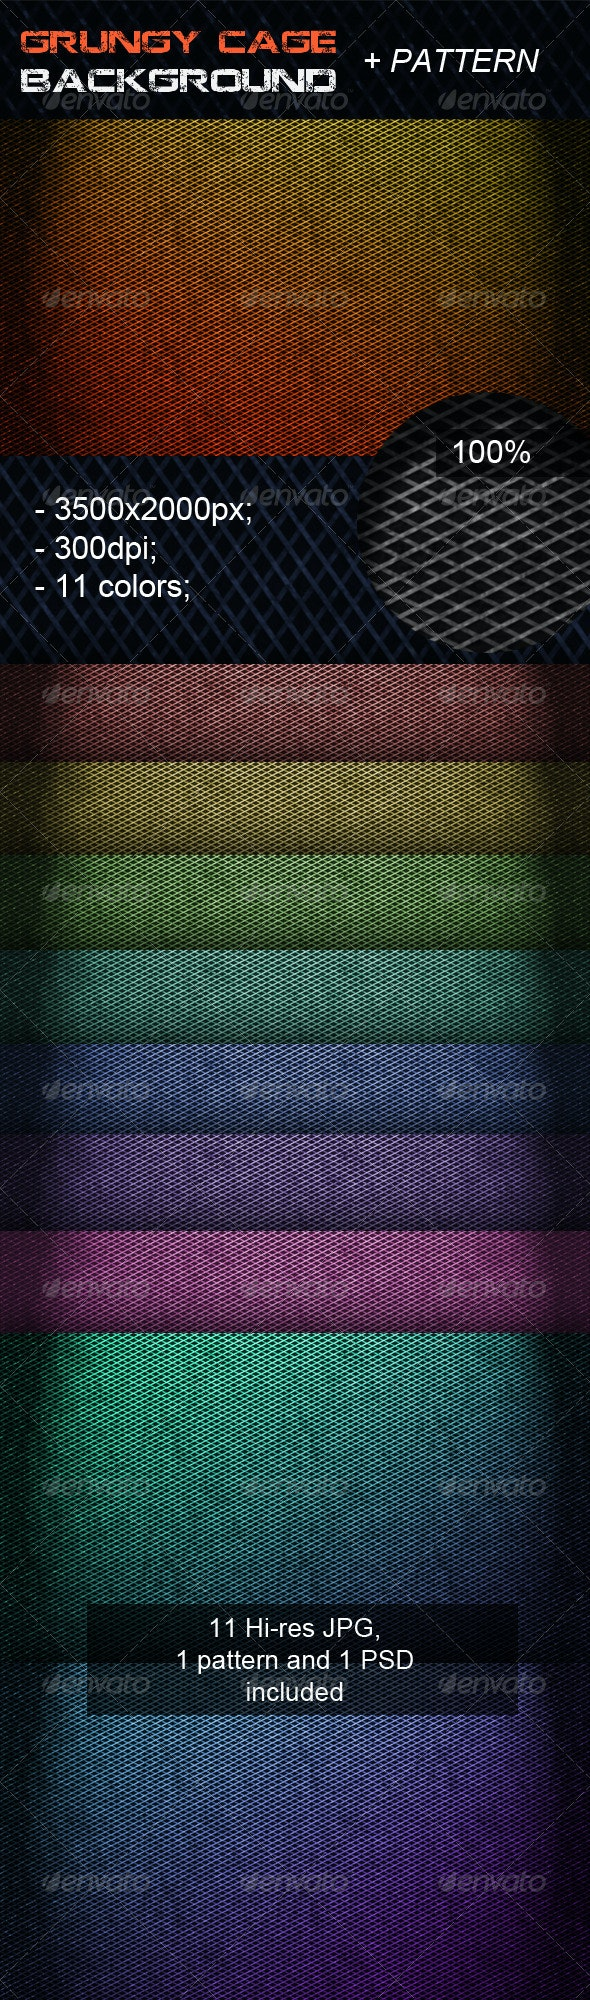 Grungy Cage Background - Patterns Backgrounds